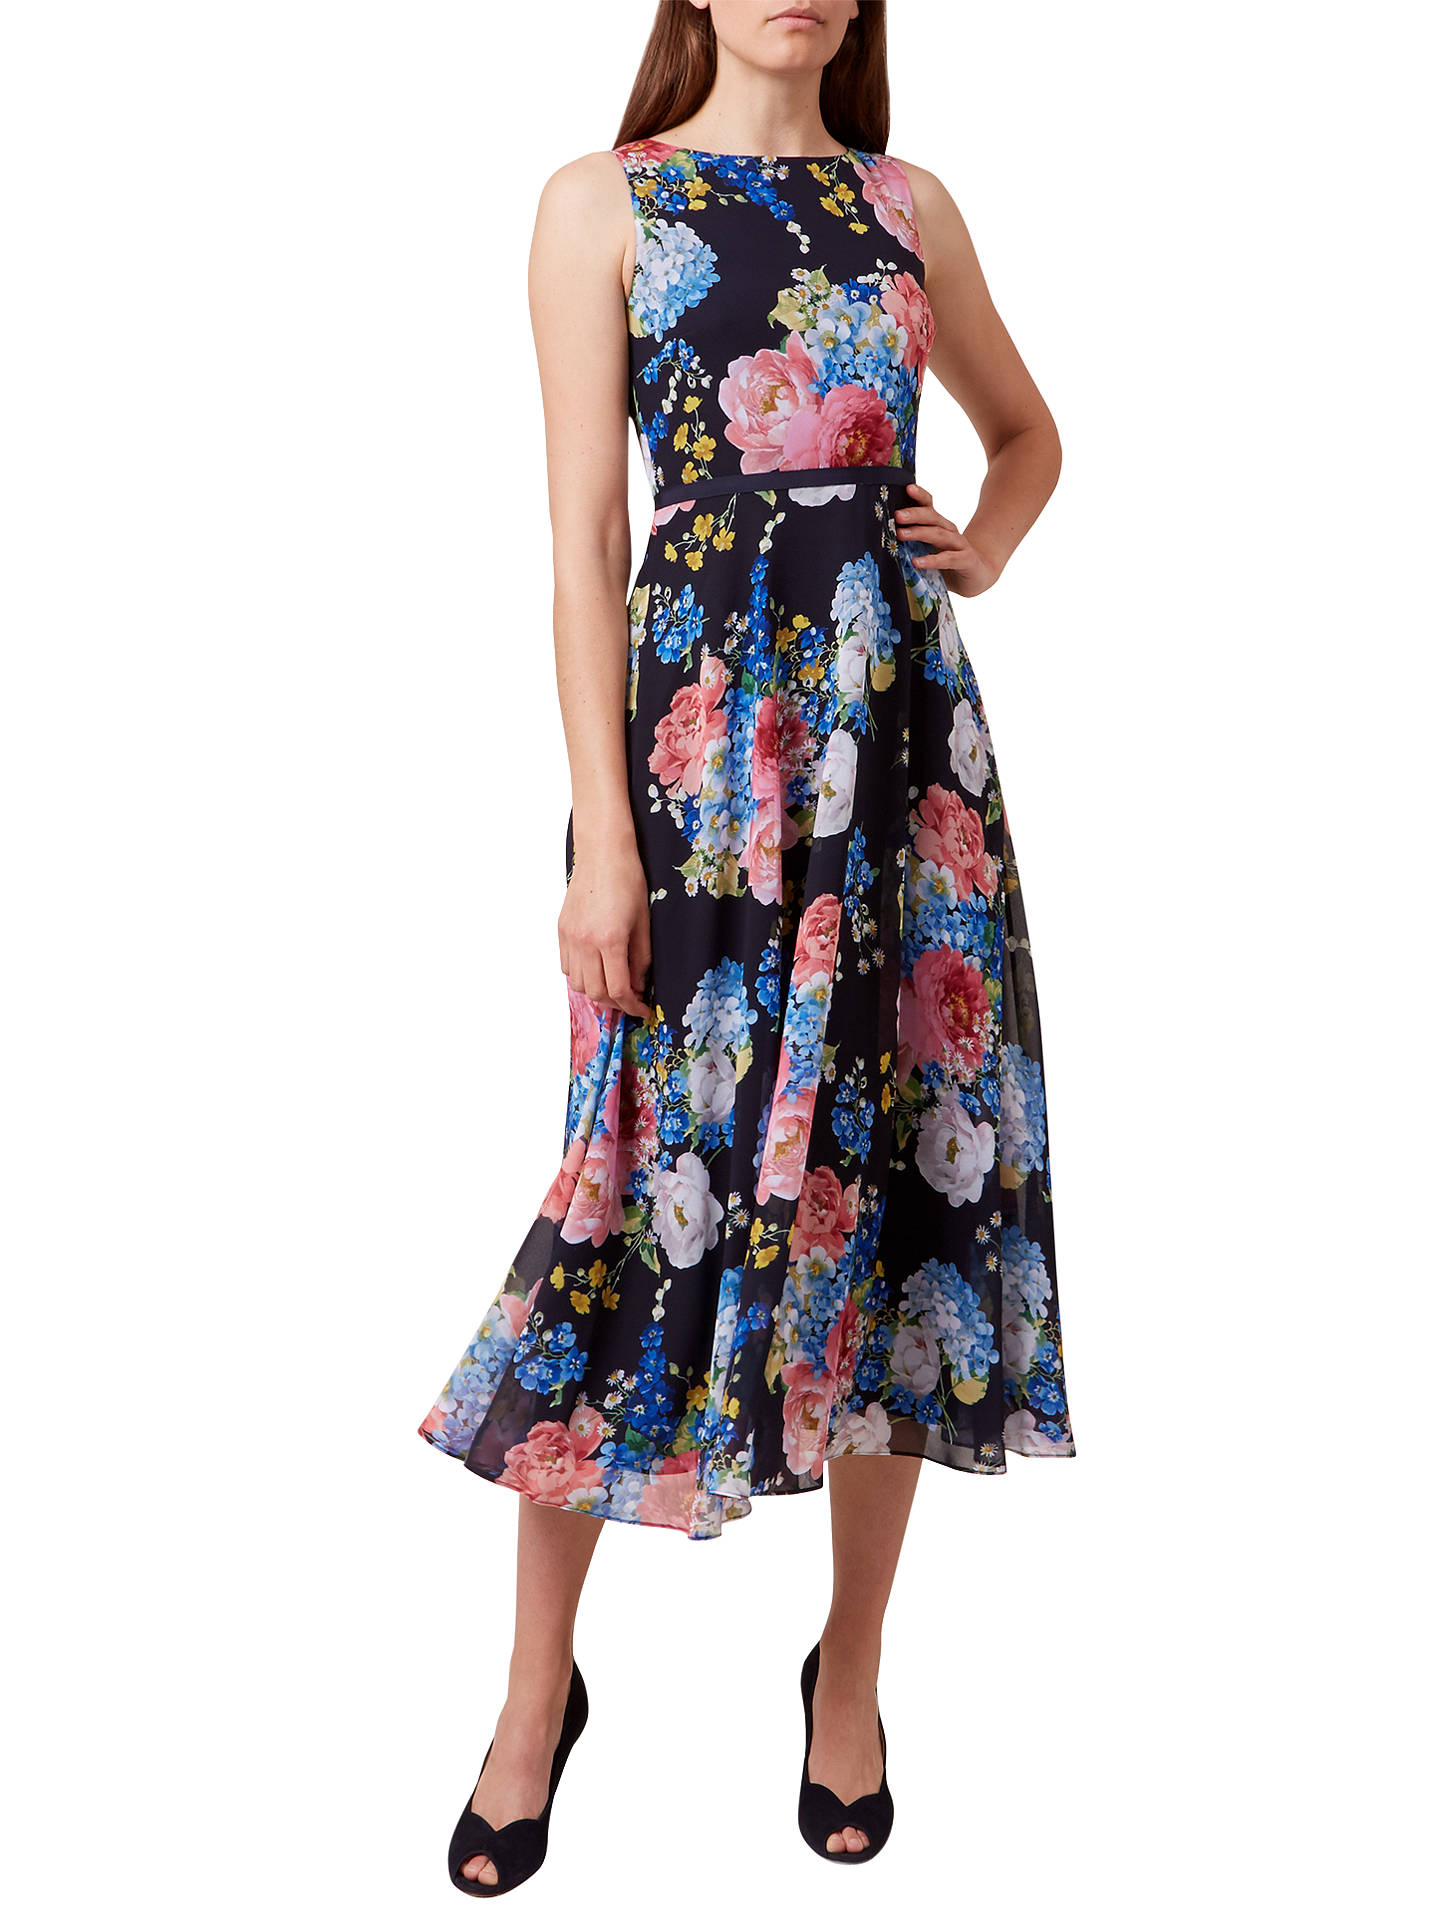 Hobbs Carly Floral Print Midi Dress Navy Multi At John